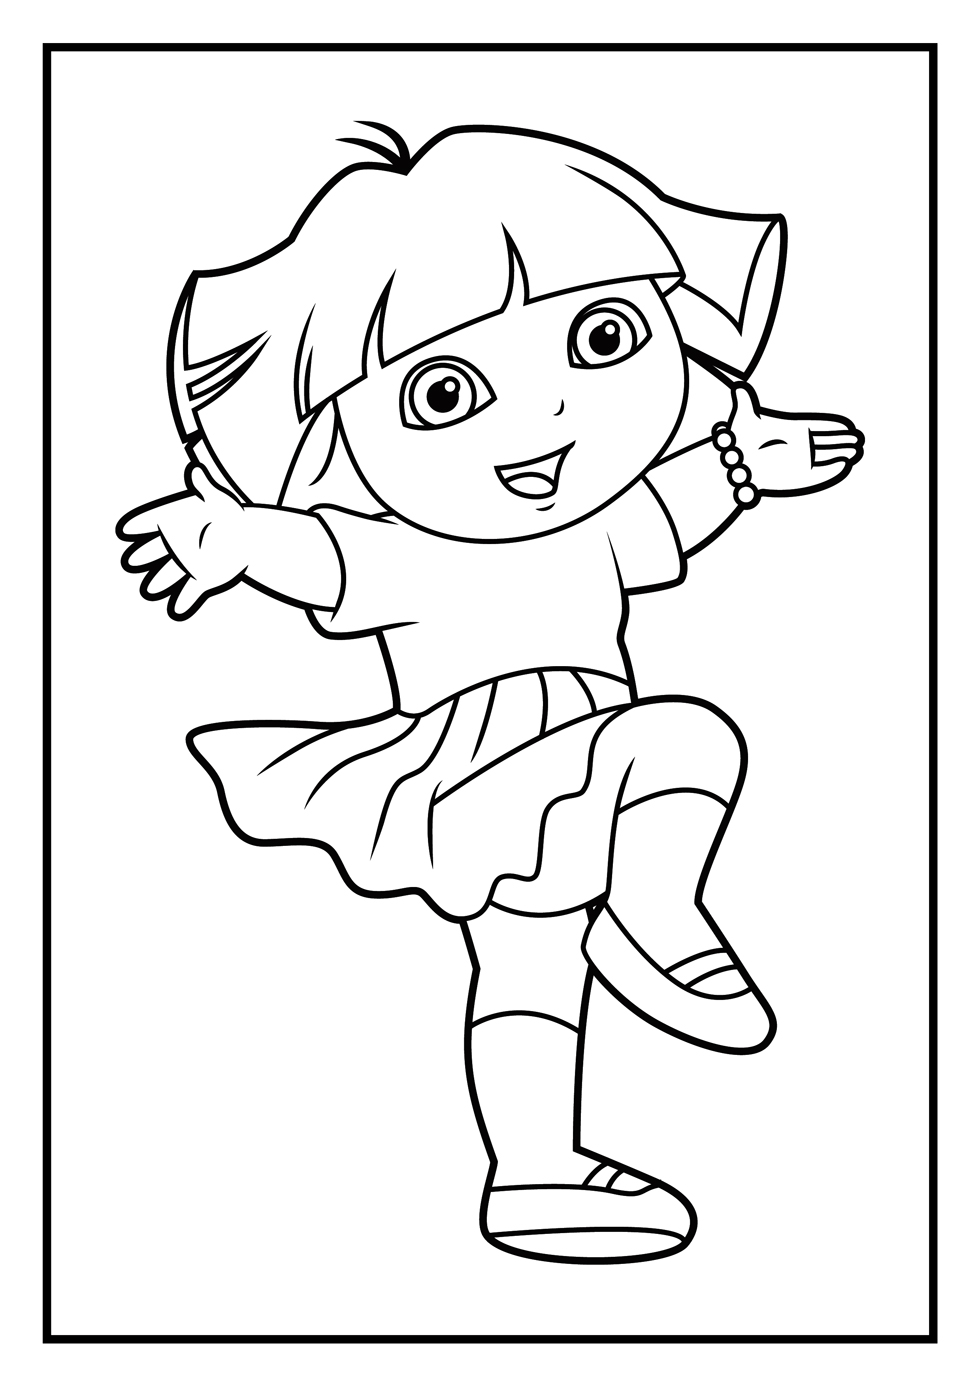 printable dora pictures dora coloring pages for kids printable free coloring pictures dora printable